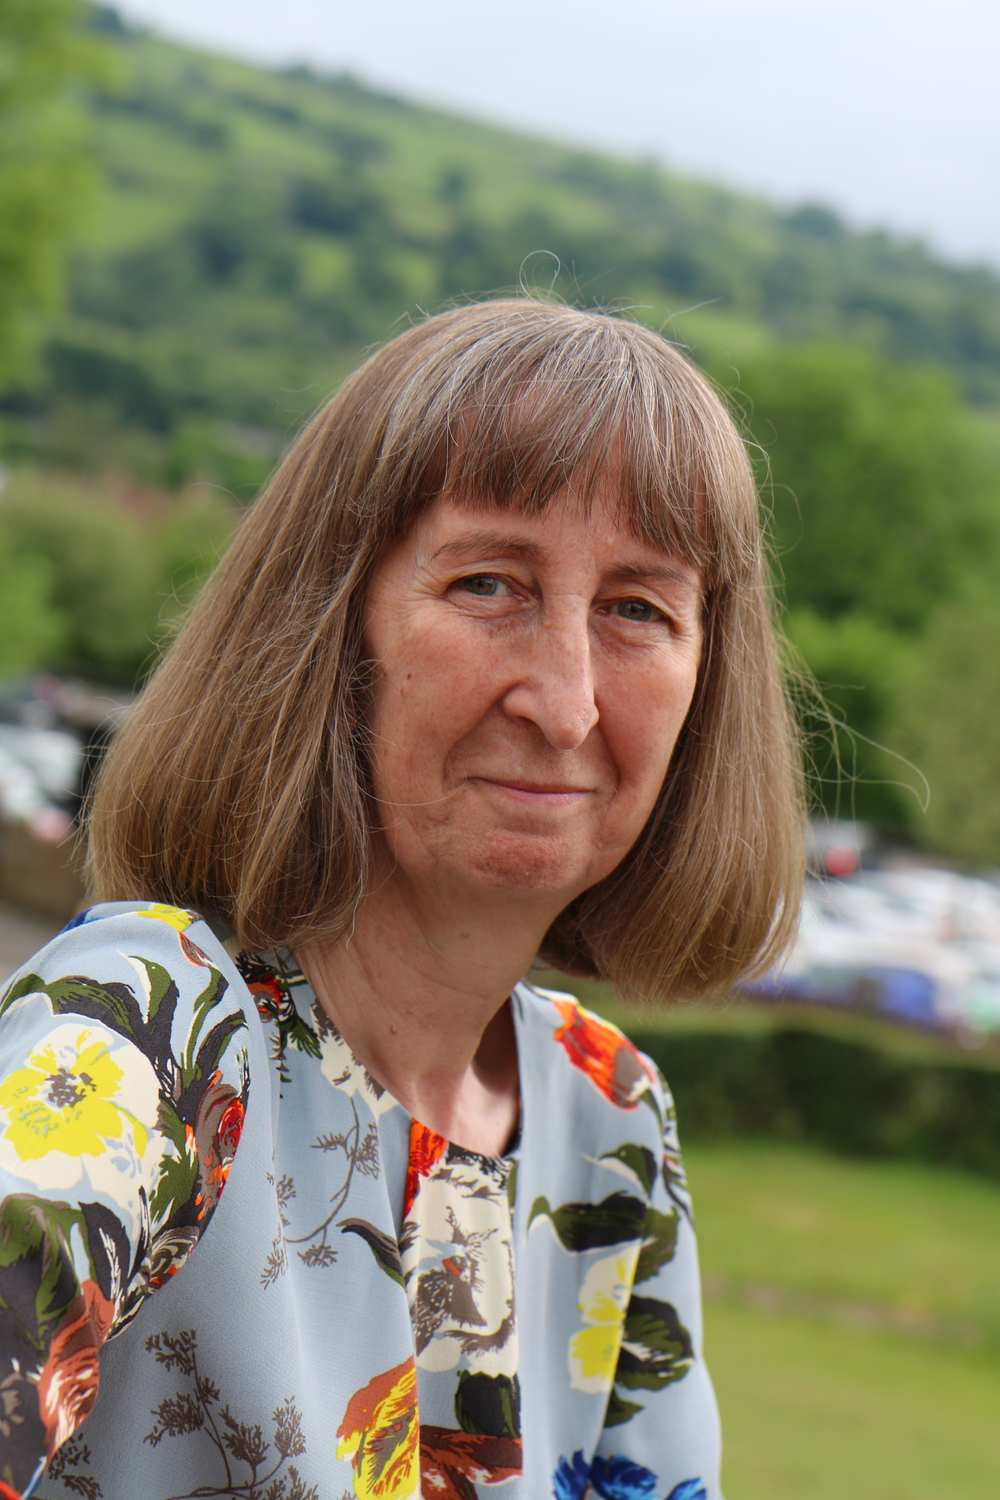 Ruth Northway. Professor of Learning Disability Nursing. OBE. June 2016. Neil Gibson